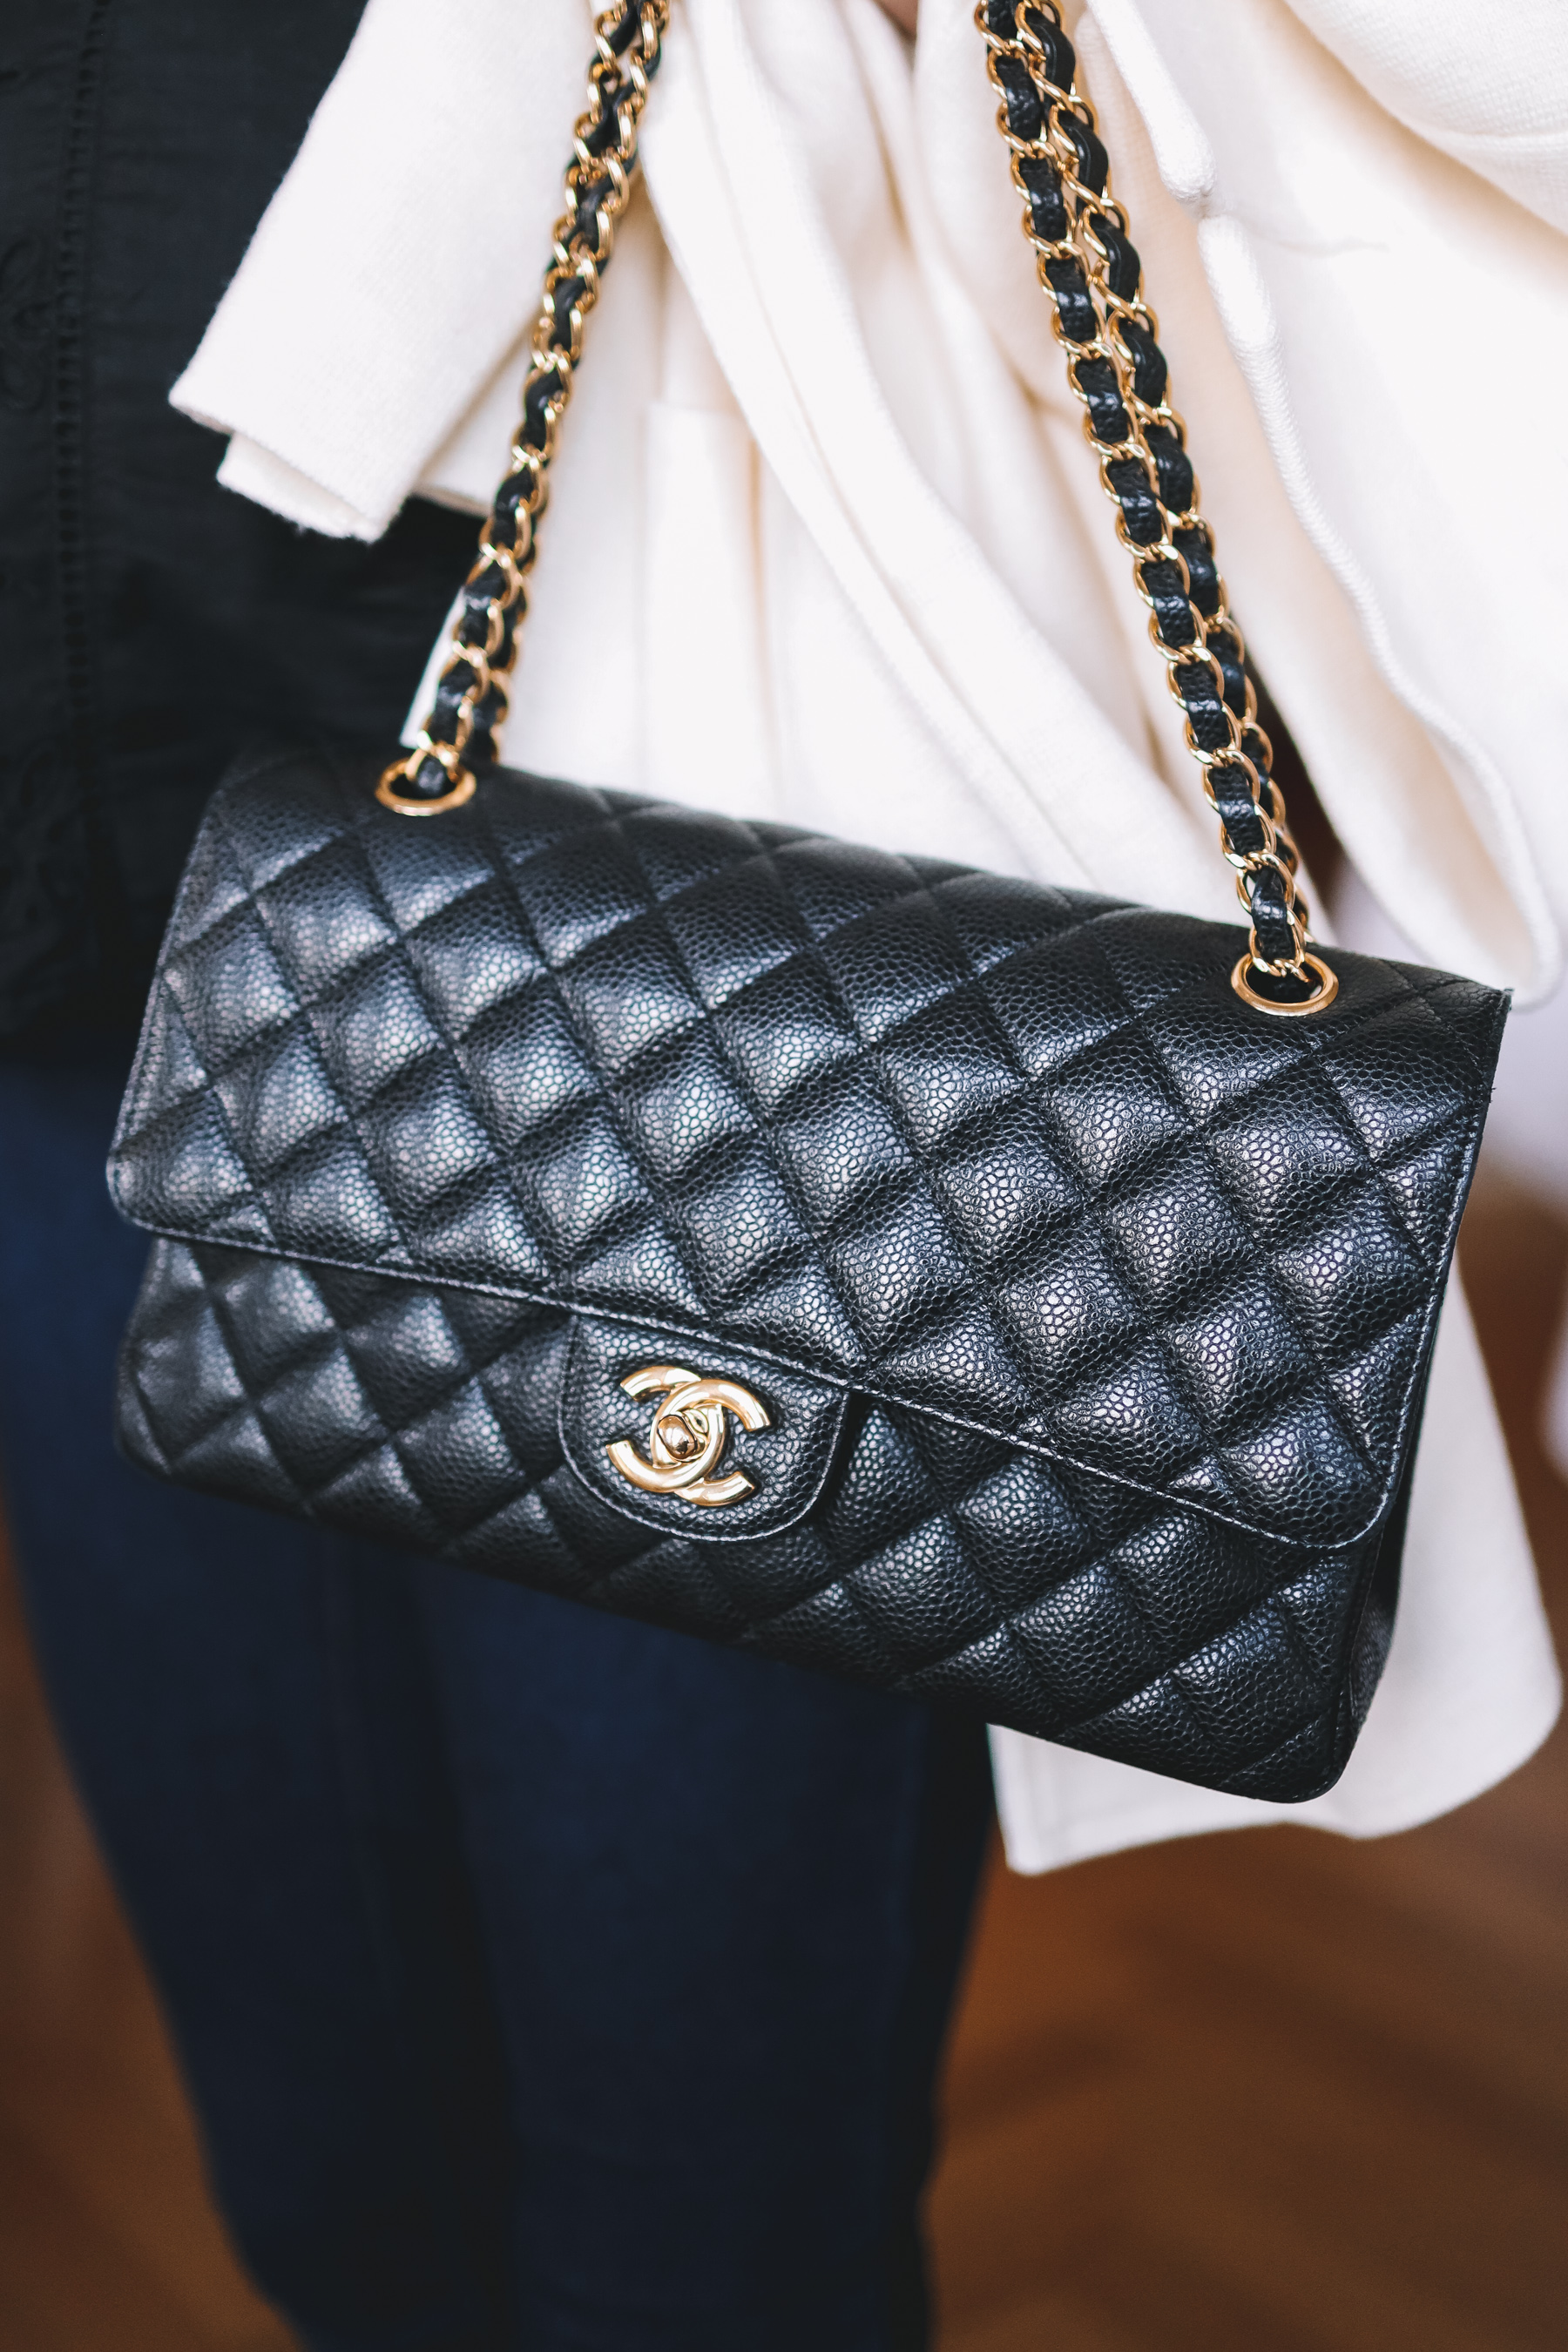 Chanel Double Flap Medium Bag